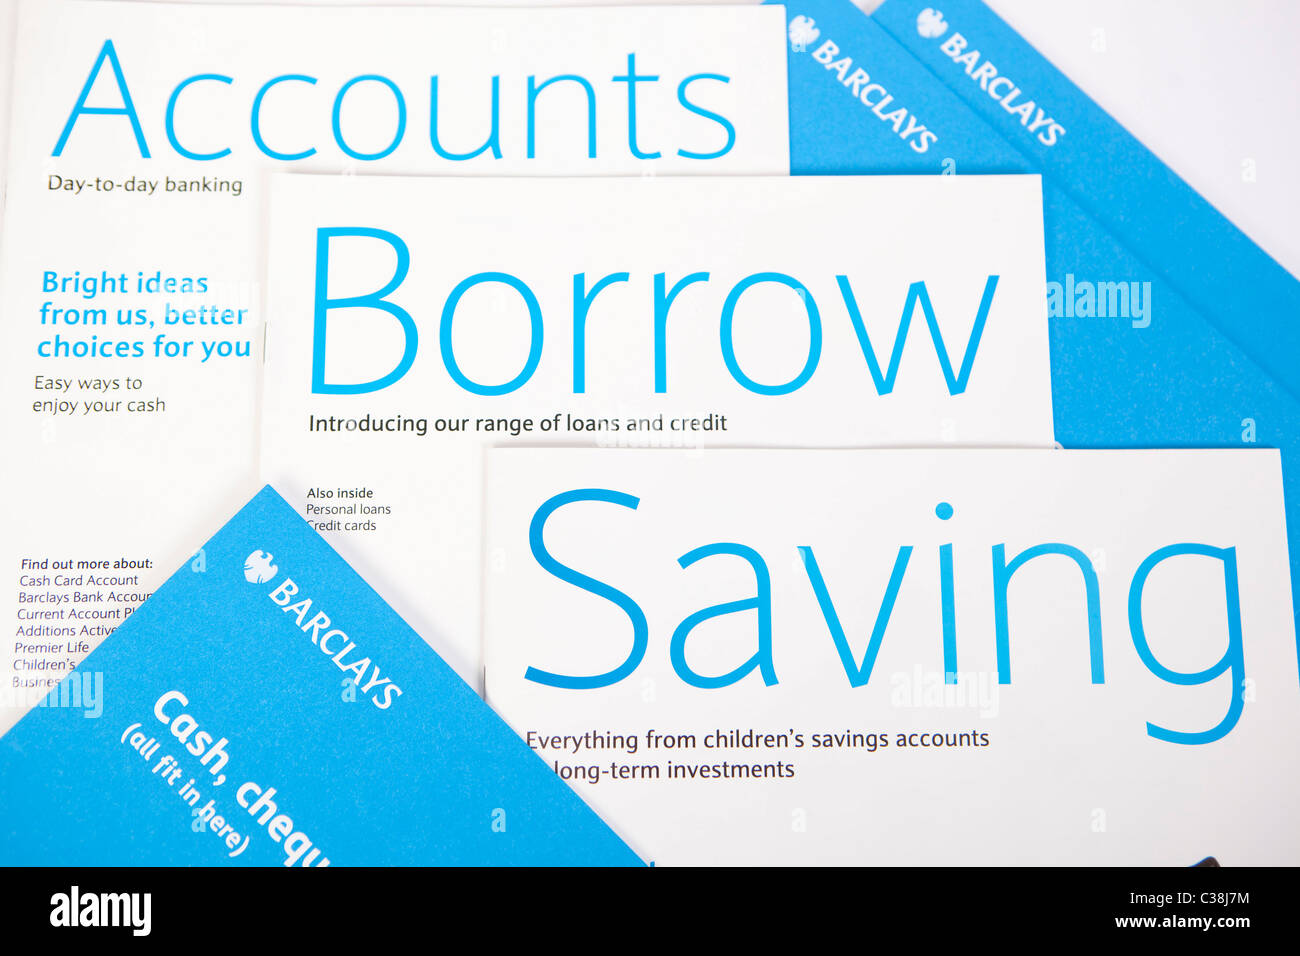 services offered by barclays bank